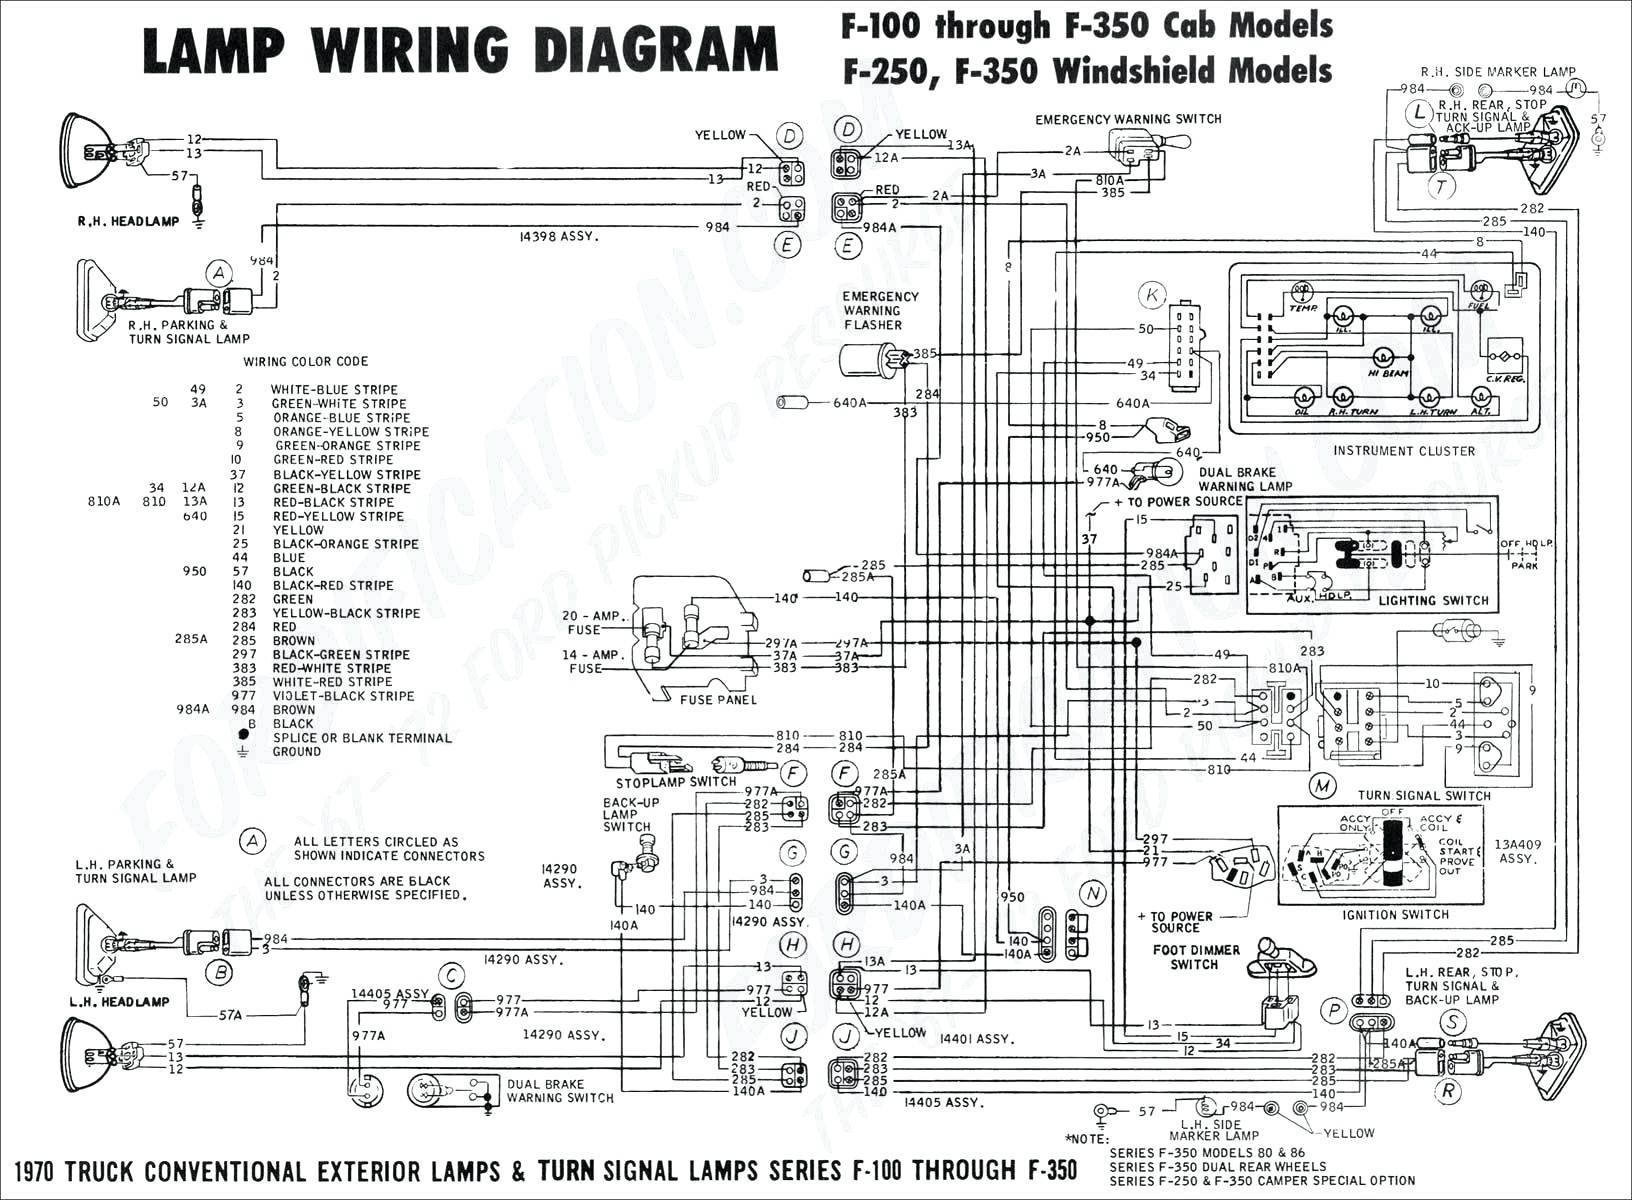 chelsea pto wiring diagram as well 2002 ford f550 fuse box diagram